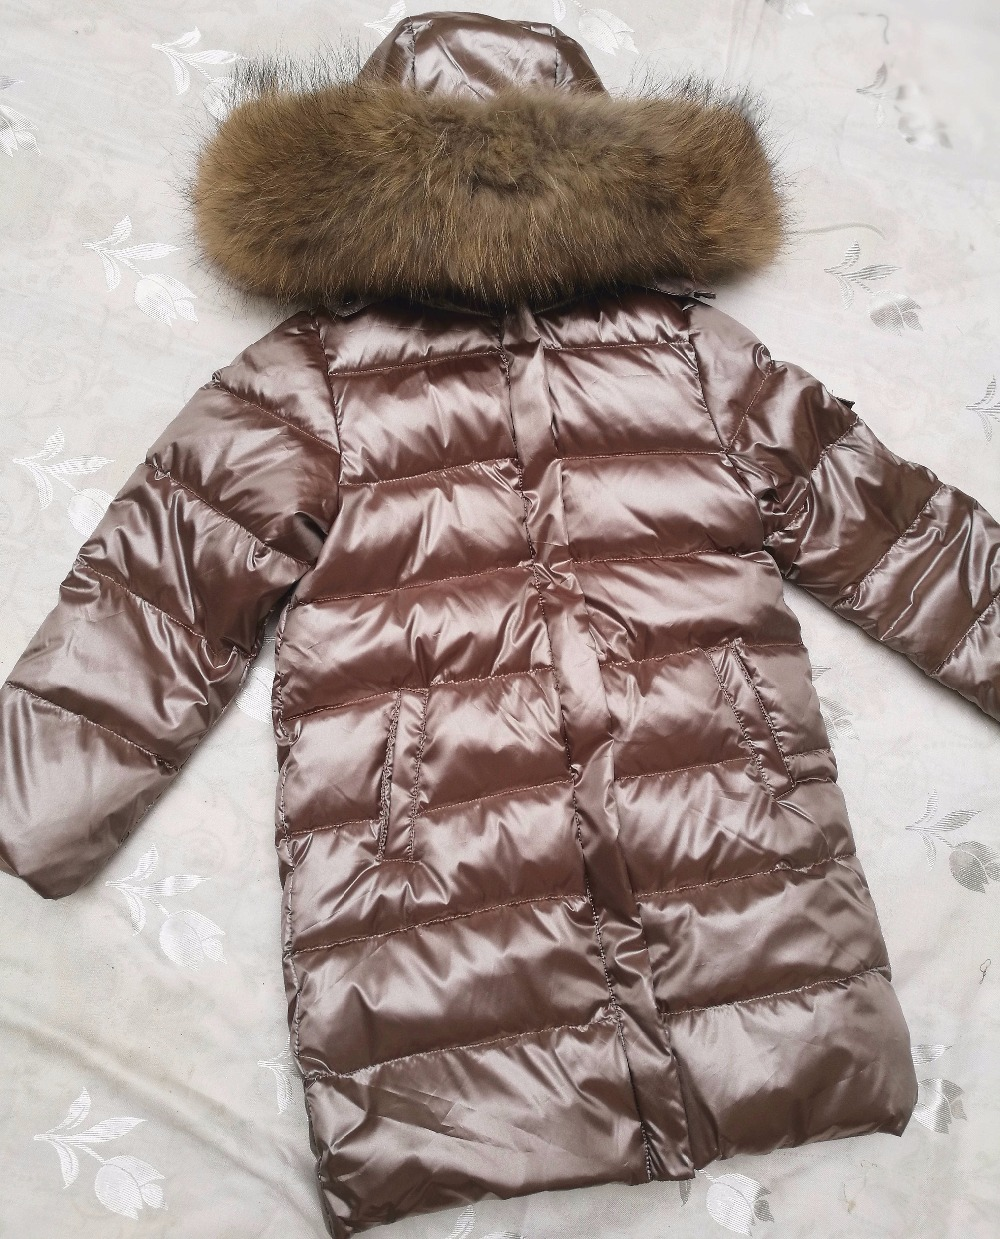 Winter Jacket Baby Girl Parkas Coat Fur Hood Winter Down Jackets Kids Hooded Down Coats Thick Children's Warm Real Fur Collar a15 girls down jacket 2017 new cold winter thick fur hooded long parkas big girl down jakcet coat teens outerwear overcoat 12 14